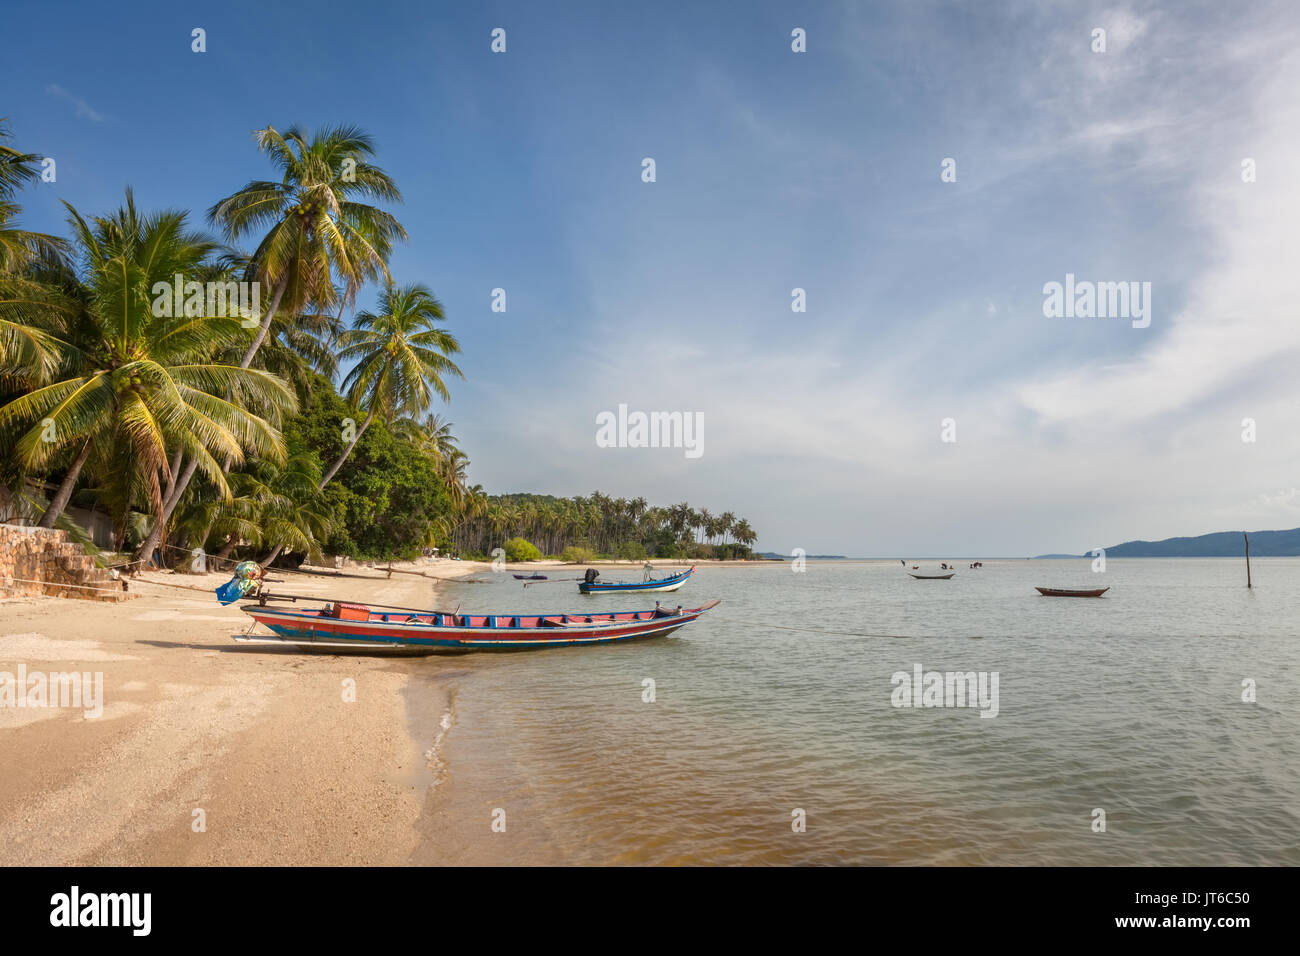 Thai fishing boats moored at Thong Krut beach, Koh Samui island, Thailand - Stock Image